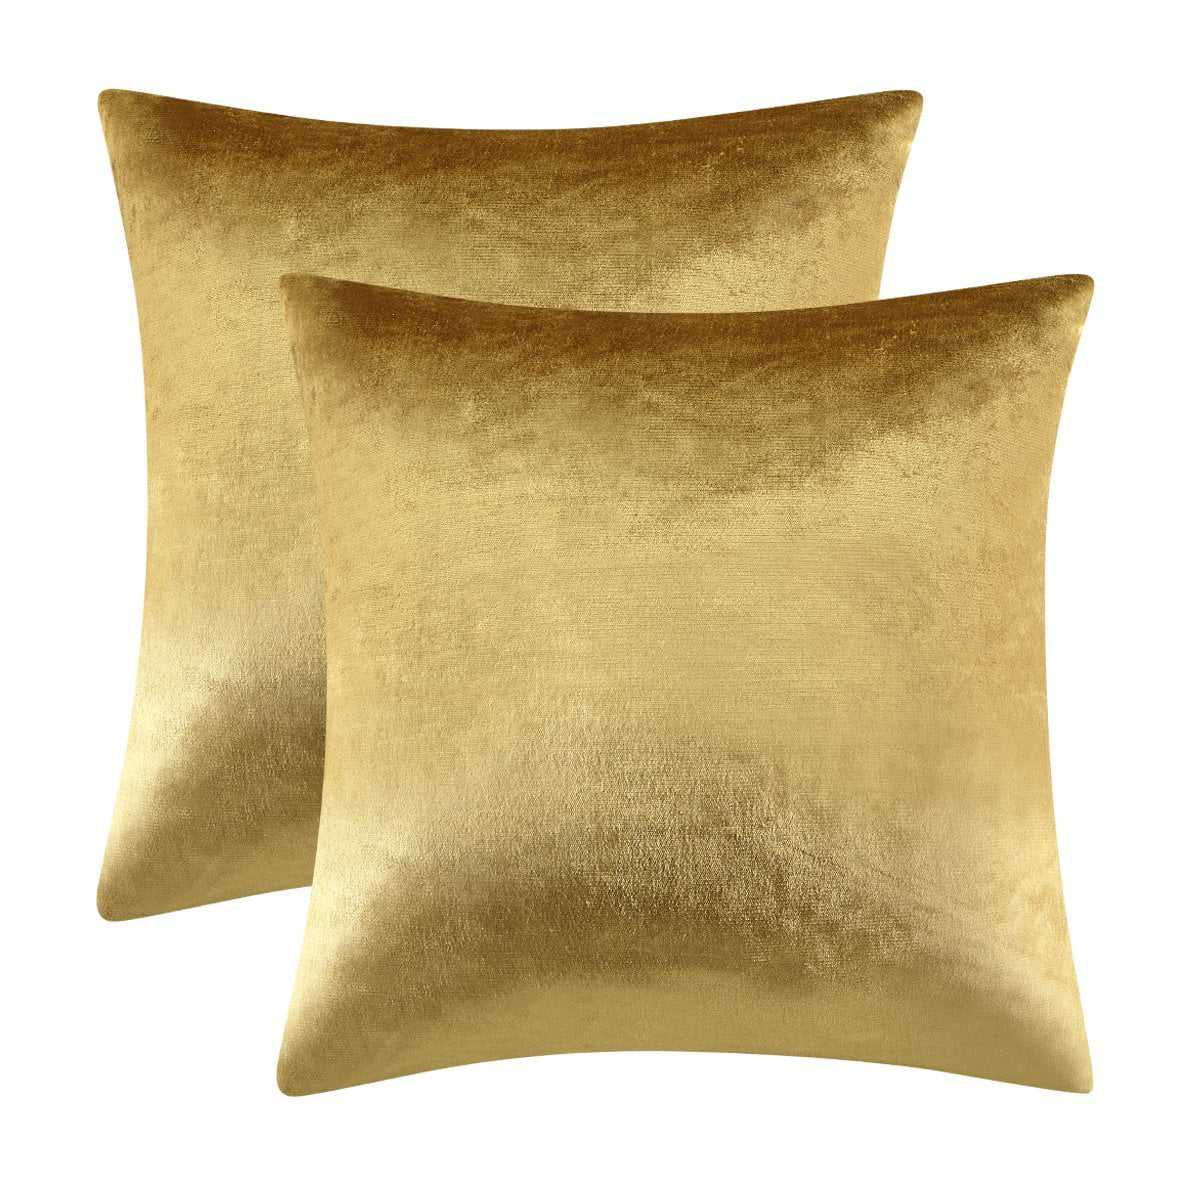 gigizaza gold velvet decorative throw pillow covers 18x18 pillow covers for couch sofa bed 2 pack soft cushion covers 18 x 18 set of 2 walmart com